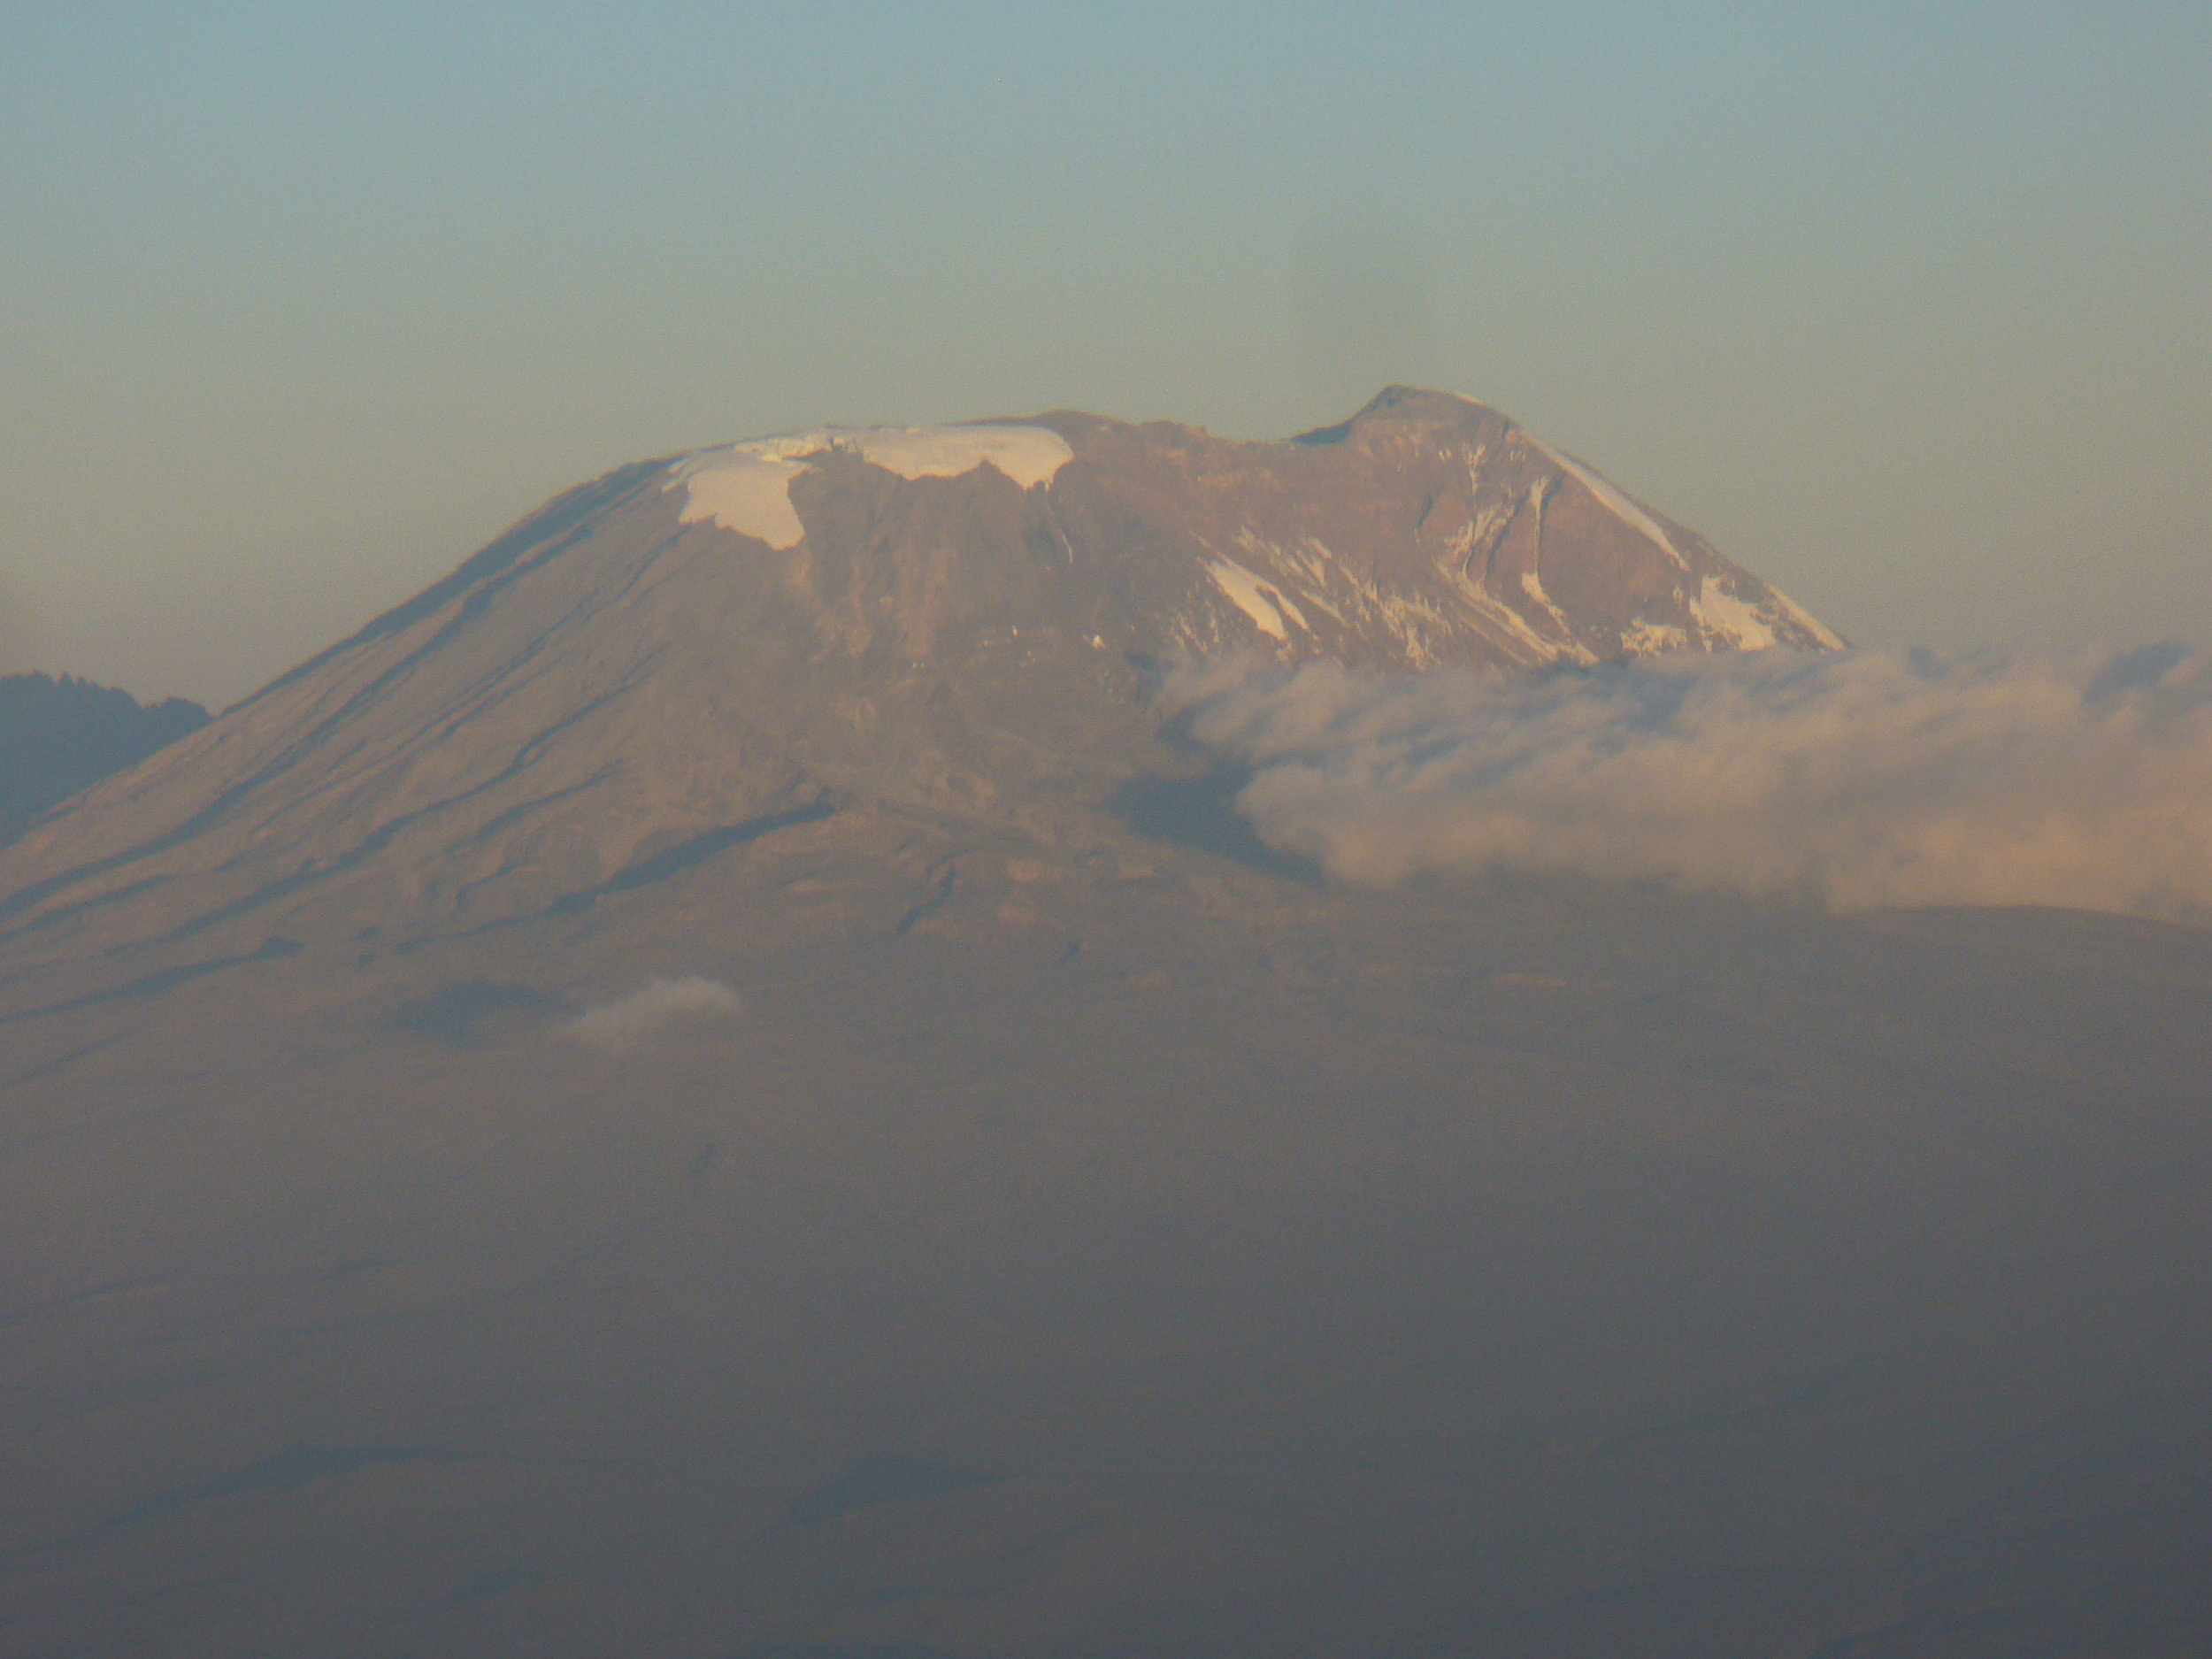 My first view of Mt. Kilimanjaro in 2011